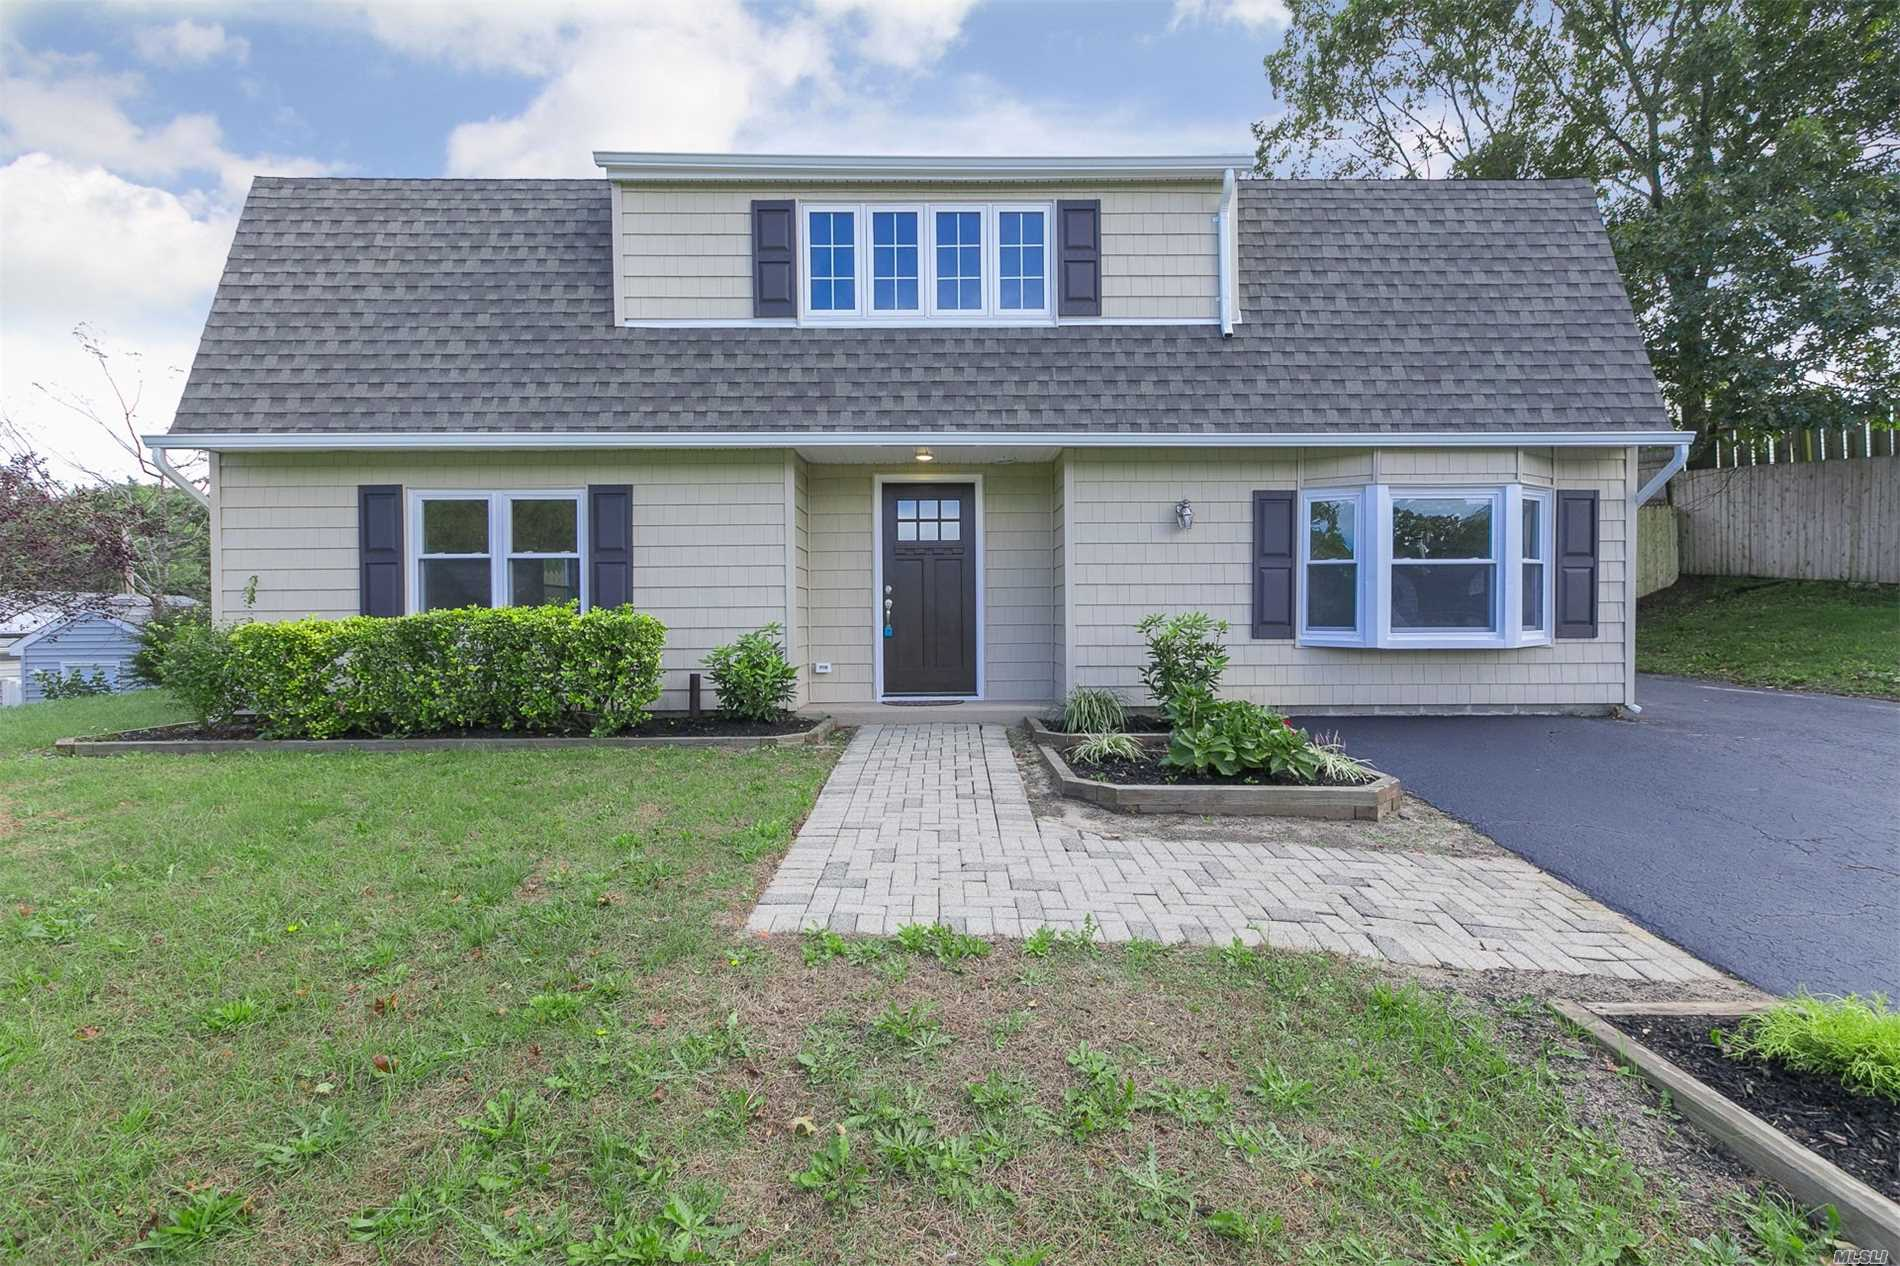 Beautifully Renovated Colonial, Eik, White Shaker Cabinets, Quartz Counter Tops, Subway Tile Back Splash, Ss Appliances, Over Sized Br's, New Ba With Carrera Marble, Mosaic Marble, Subway Tile,  Hardwood Floors, Sky Lights, New Roof, New Heating System, Free Form In-Ground Pool With New Liner. A Must See!